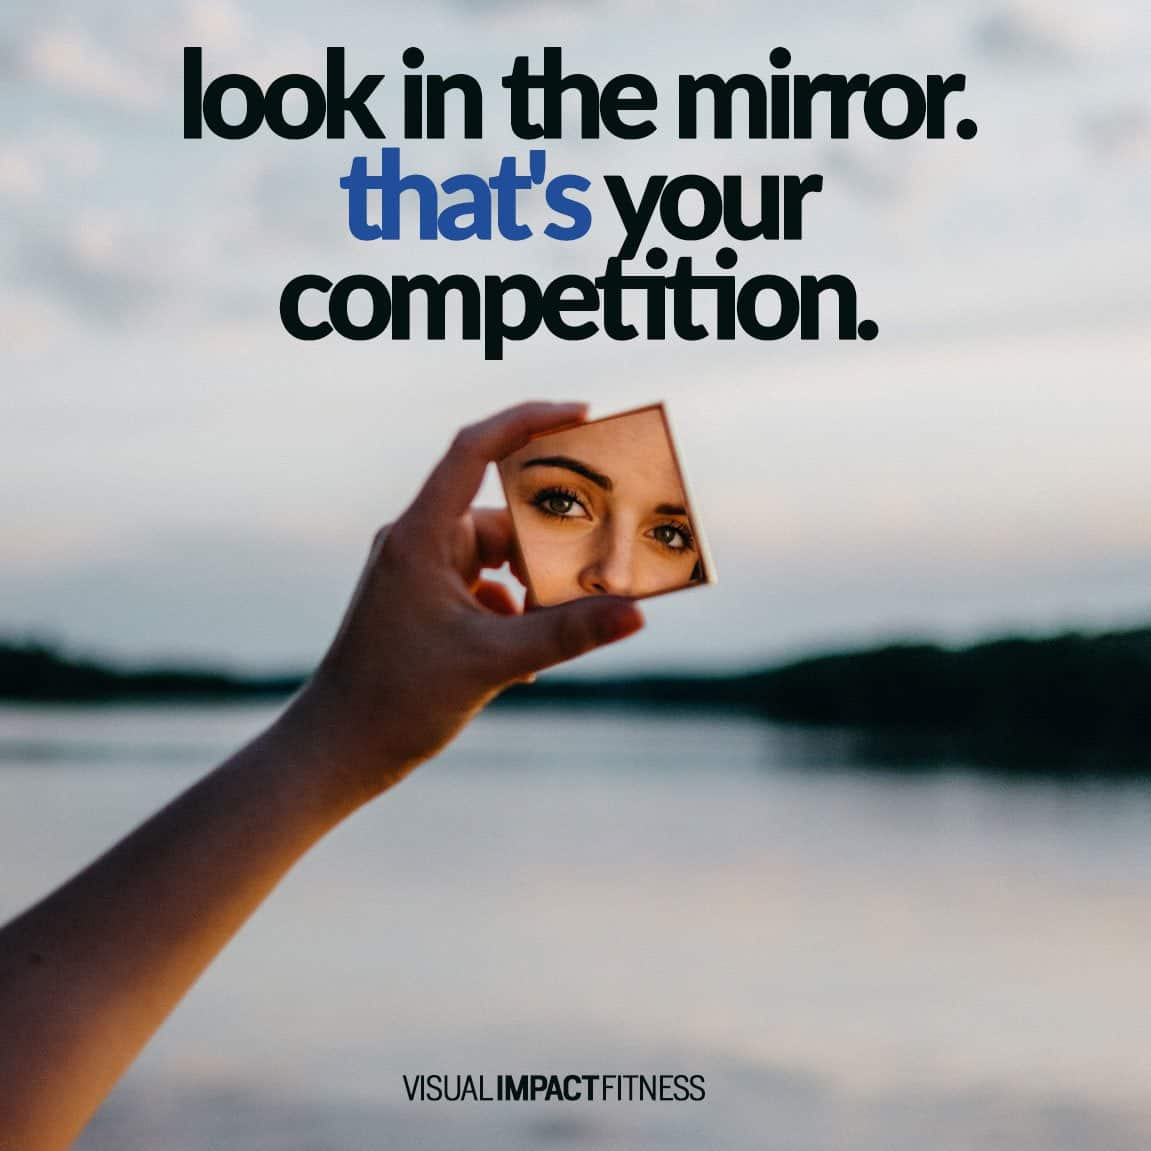 Here are several motivational pictures and quotes to use as inspiration to stay motivated for going to the gym and completing your workout routine.